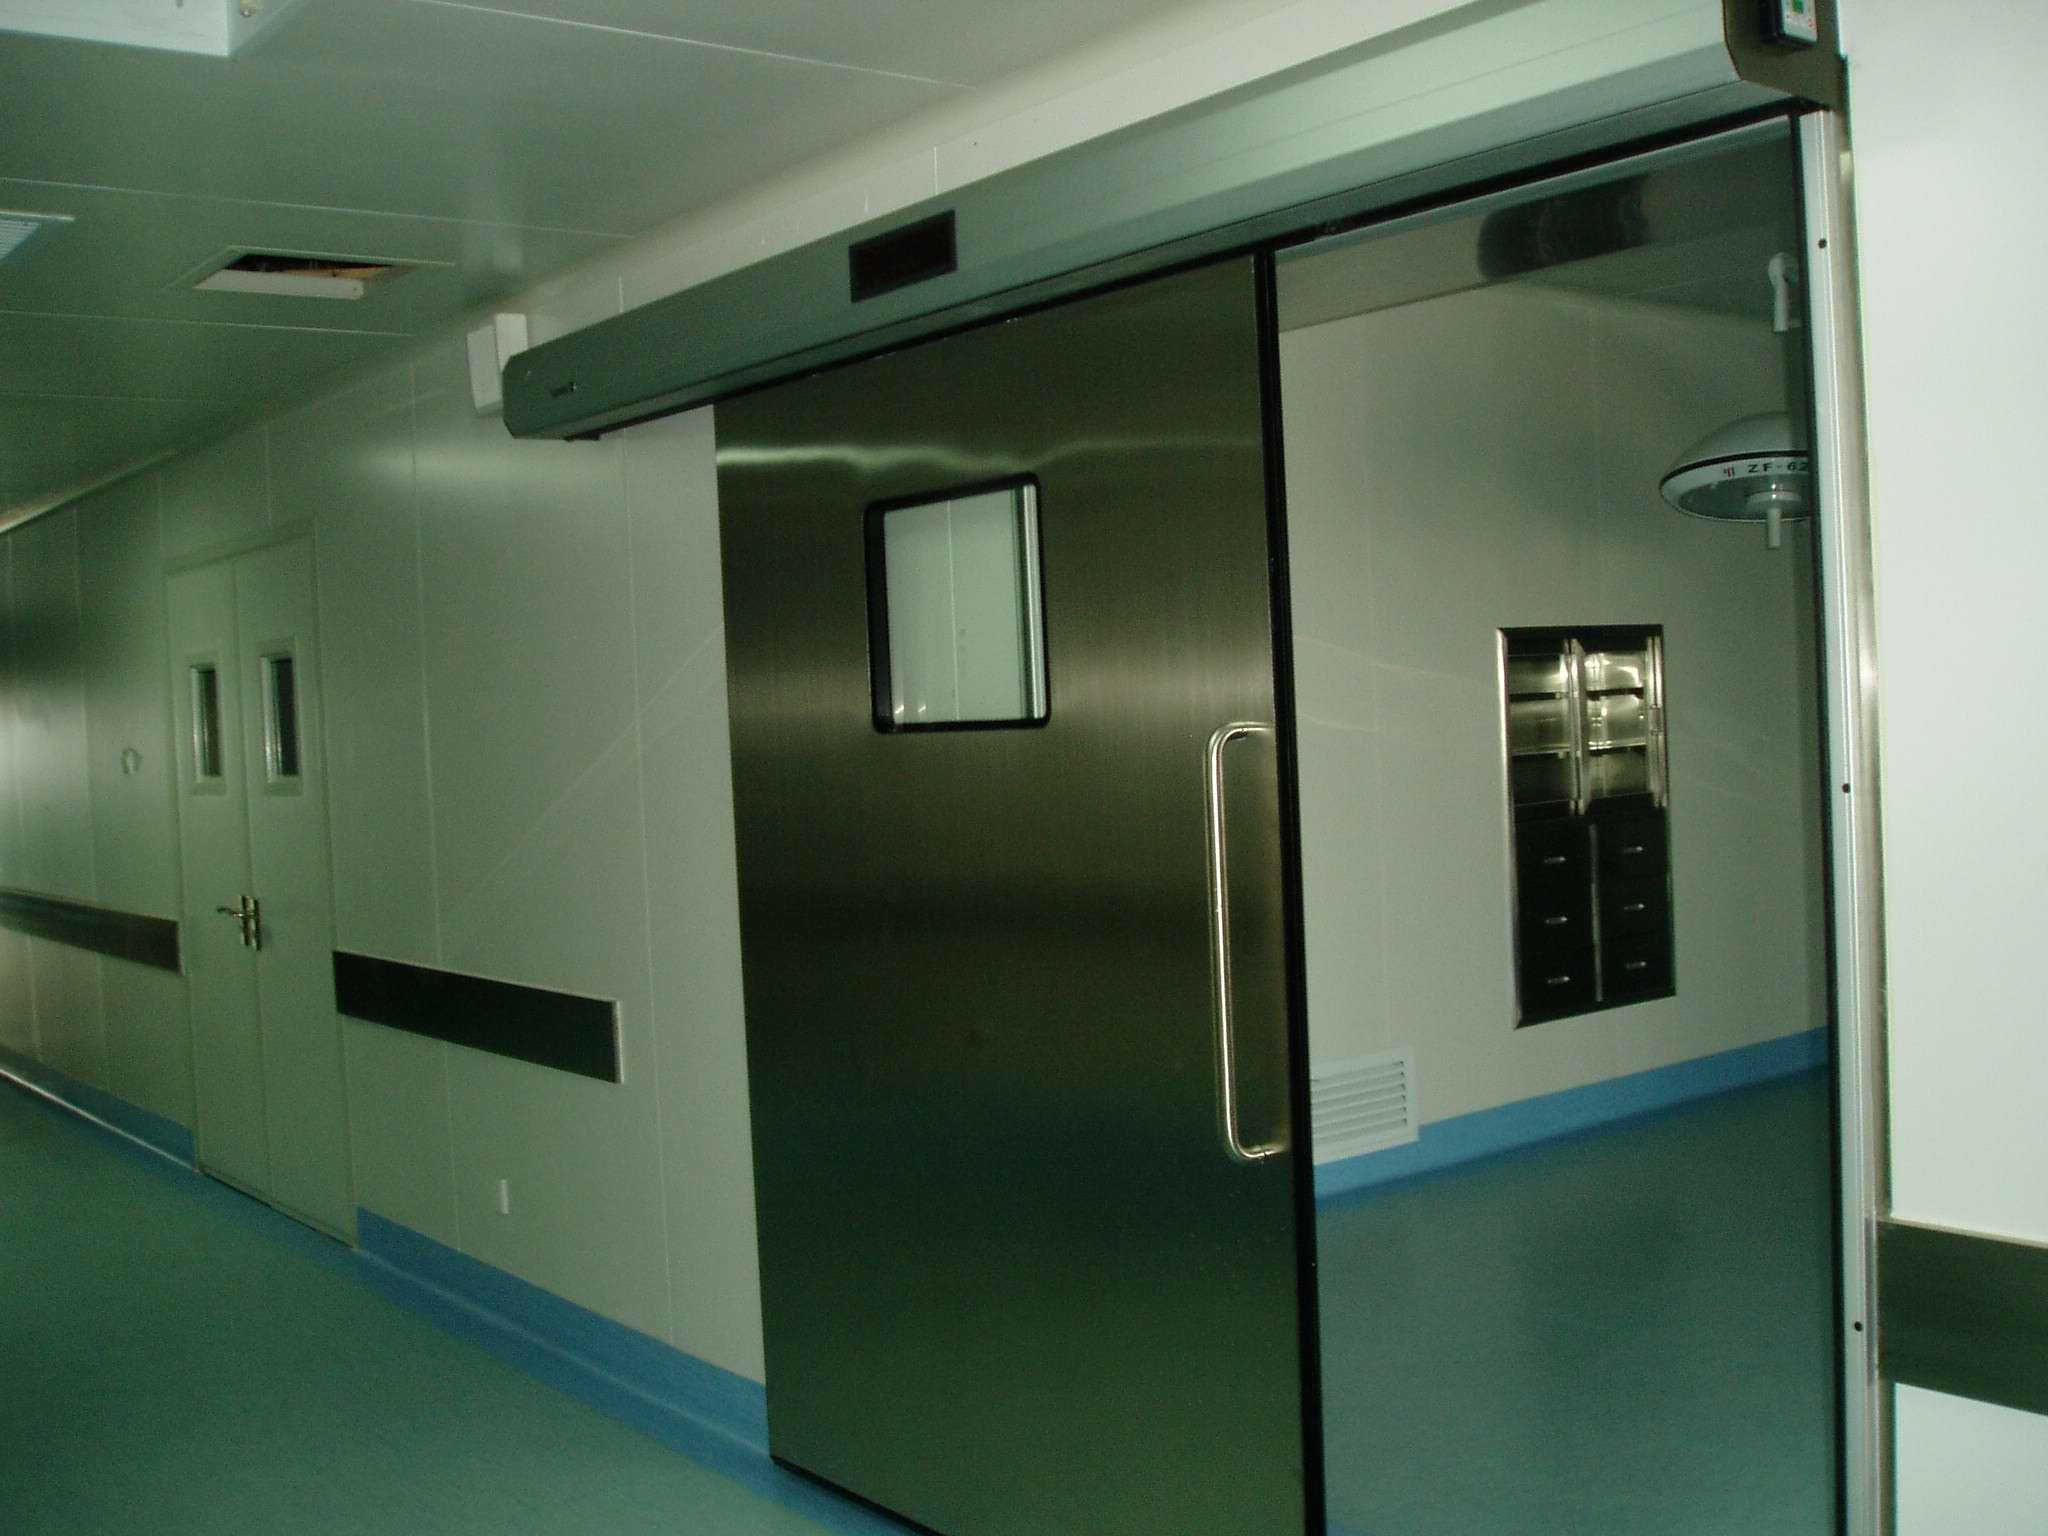 China 6 Hermetic Airtight Door with Shielding Door for Hospital - China Airtight Door Hermetic Door : airtight door - pezcame.com